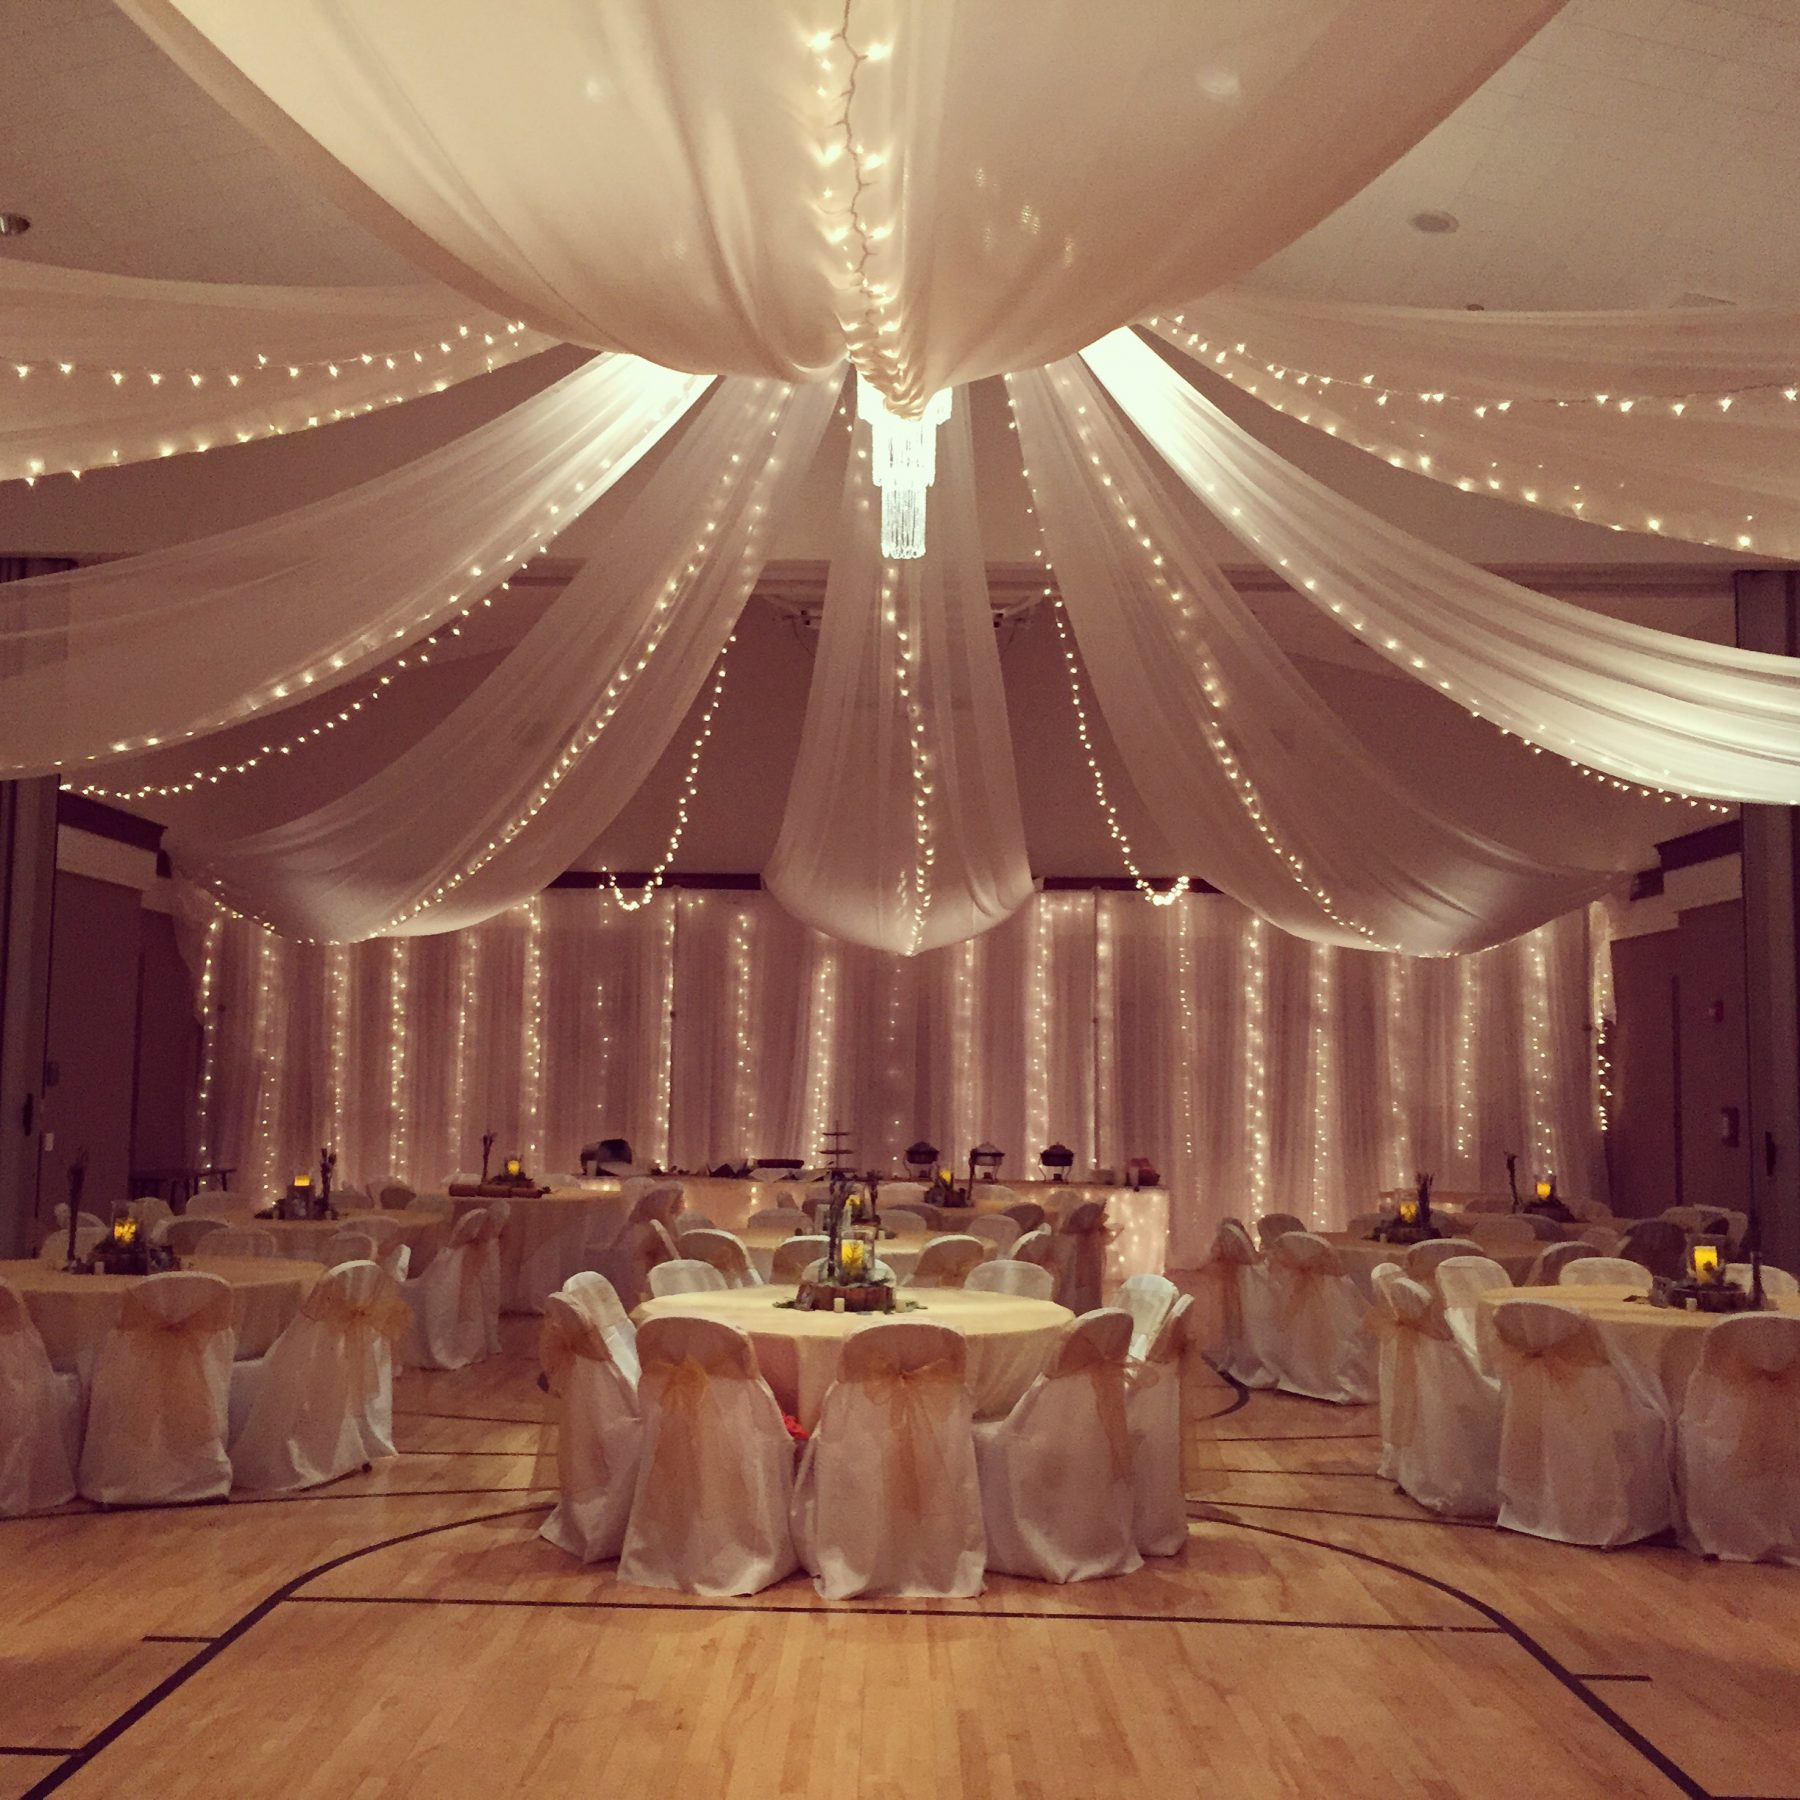 Lighting u0026 Draping packages starting as low as $695. **Discounts available when combined with DJ or Photo Booth Services** & SACRAMENTO DRAPING - Sacramento Wedding Drapes - Ceiling Draping ... azcodes.com